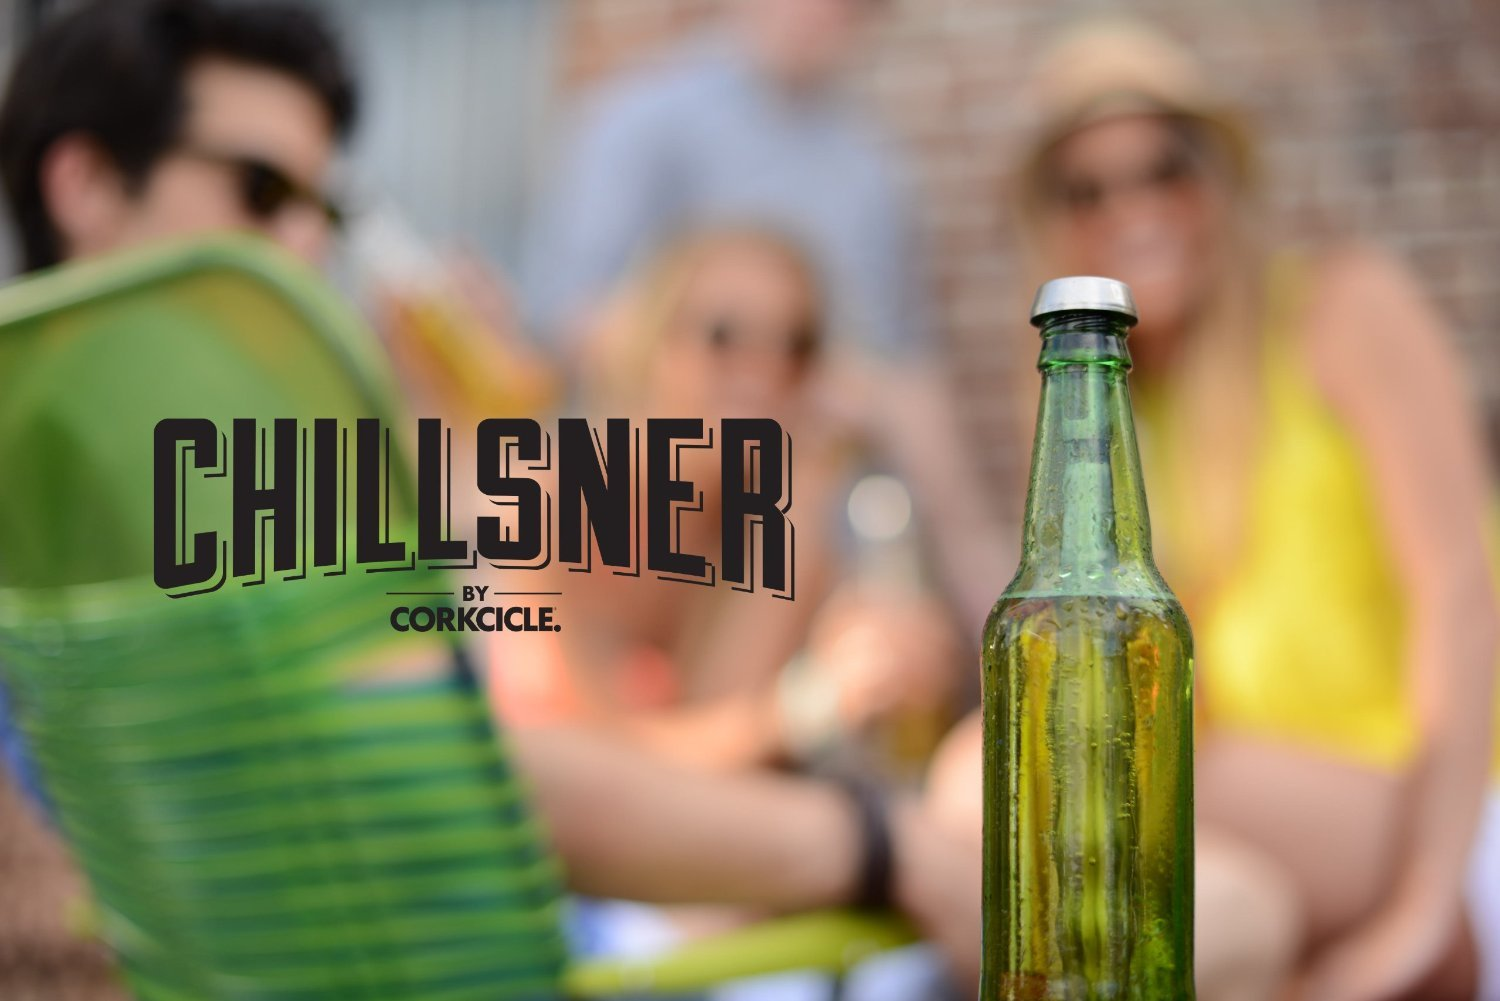 Corkcicle Chillsner Beer Chiller, 2-Pack by Corkcicle (Image #3)